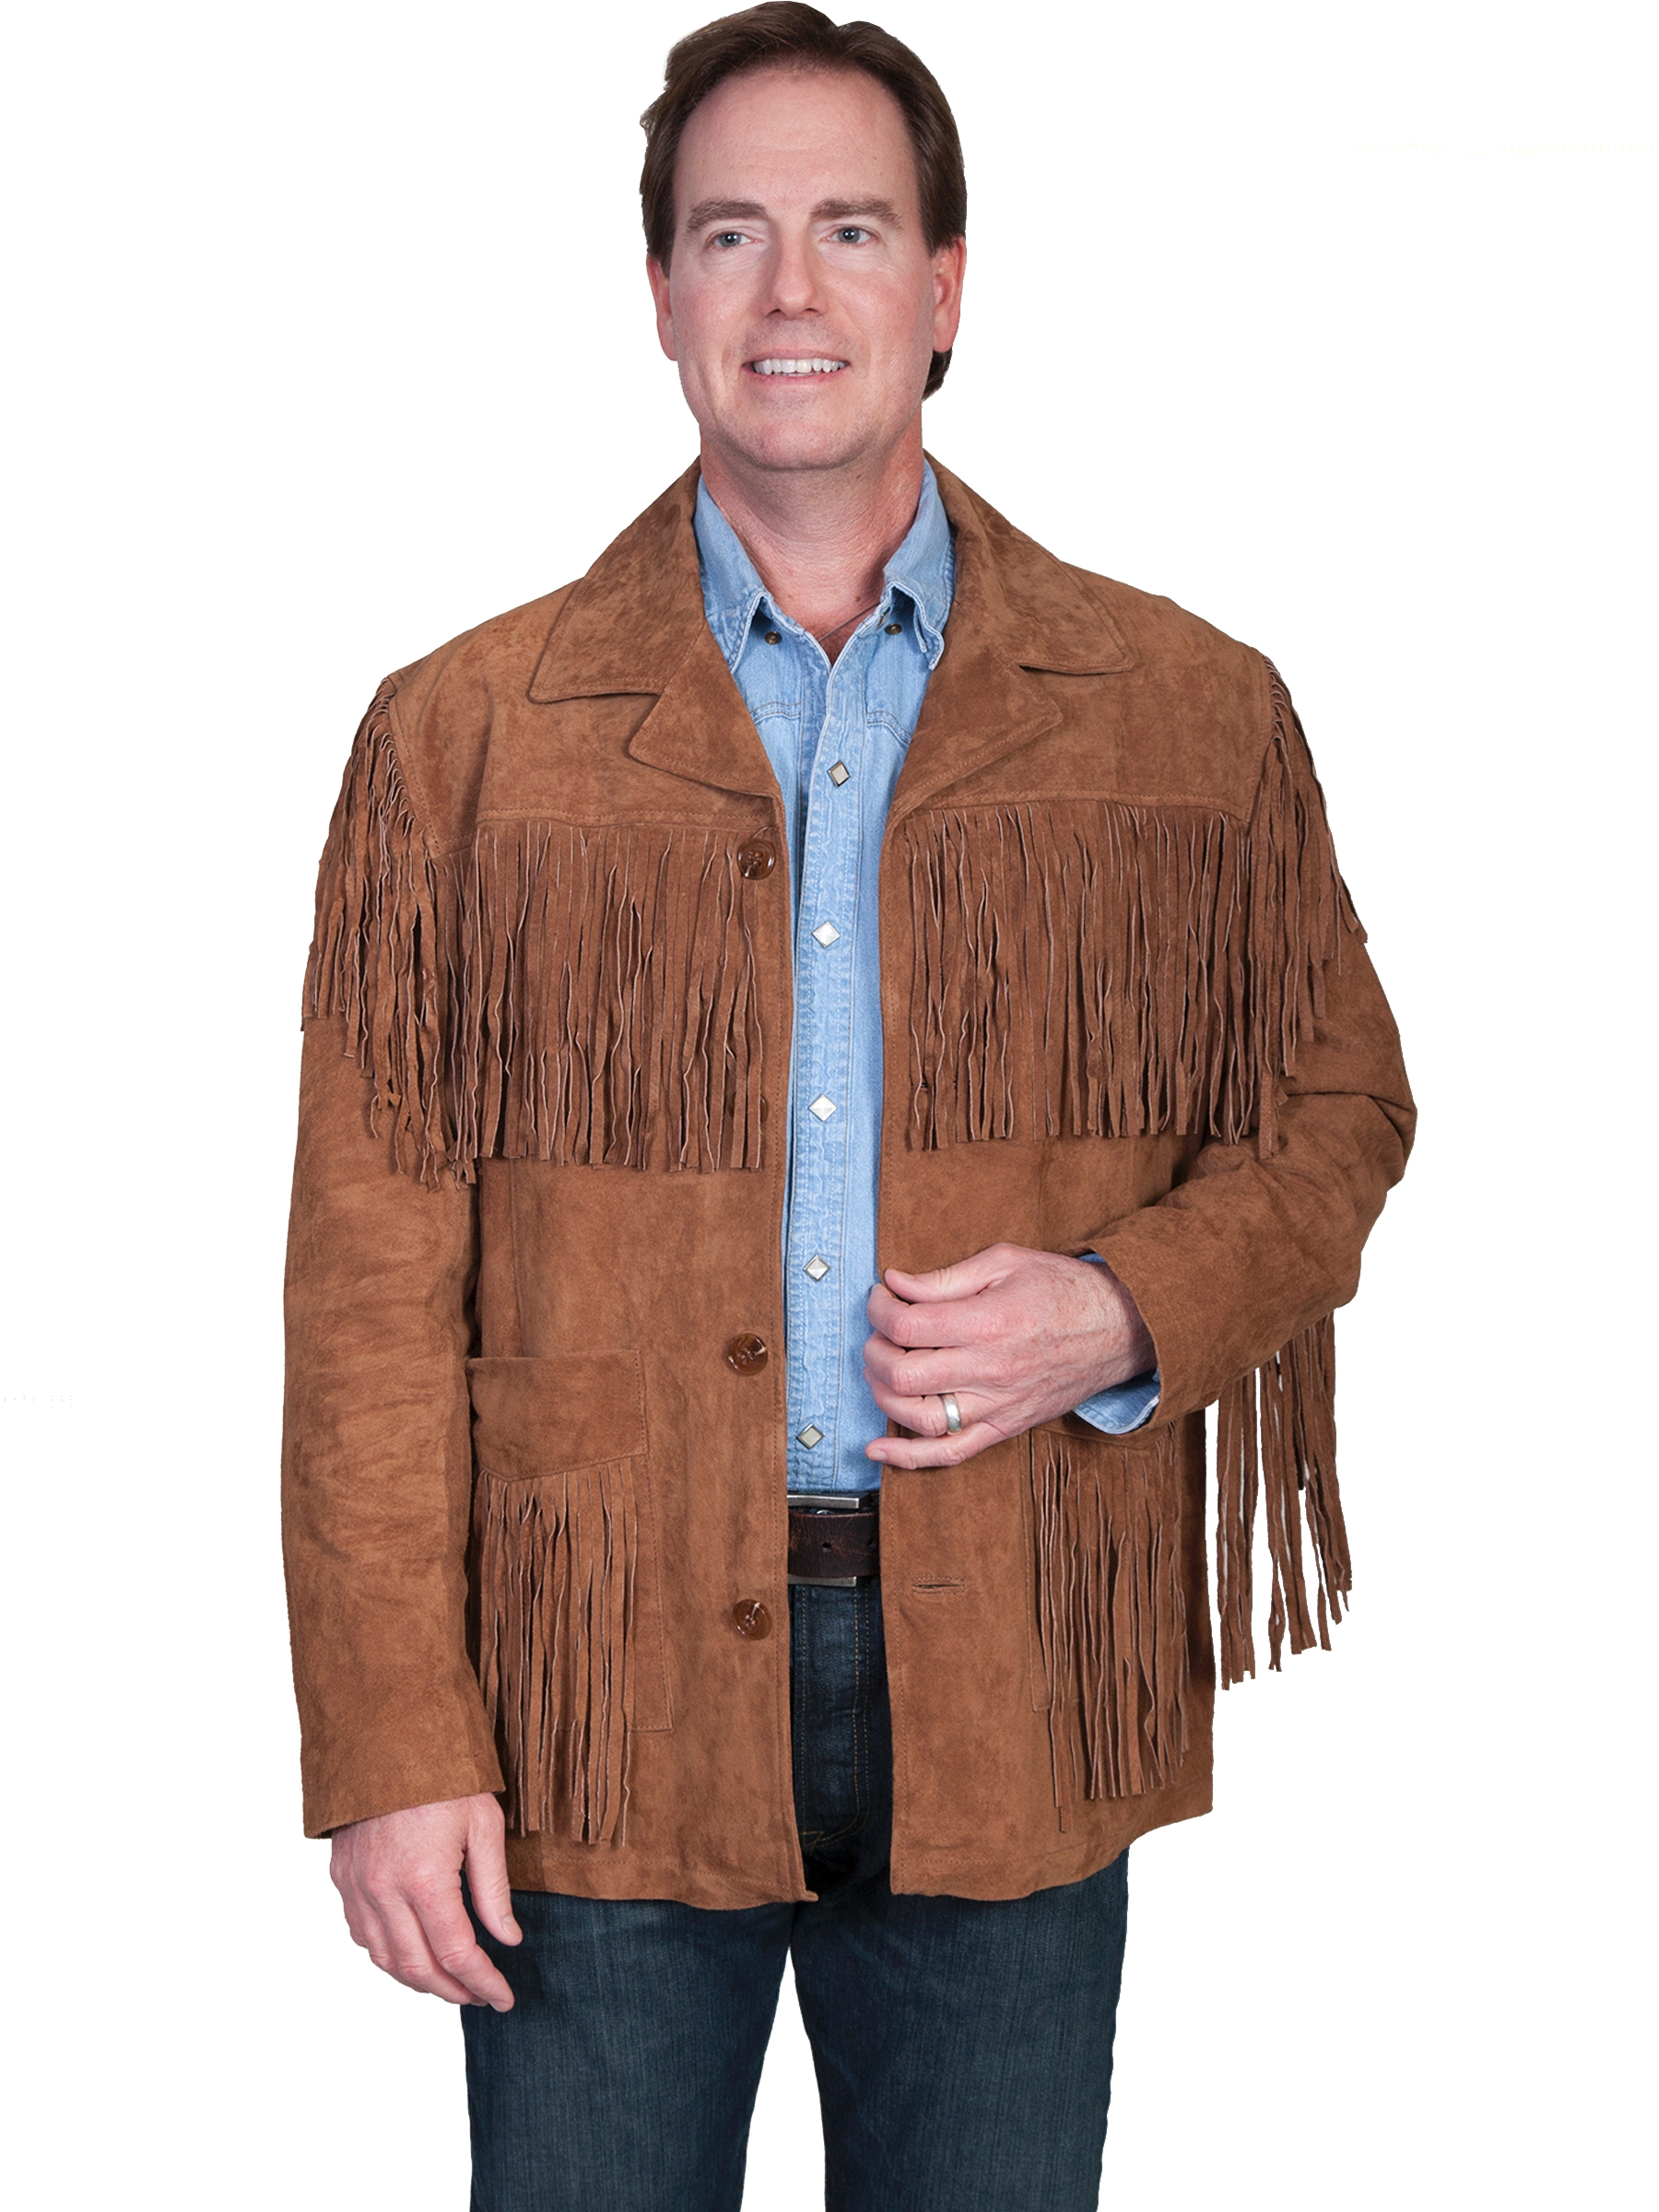 Mens big n tall western coats, mens big tall western jackets